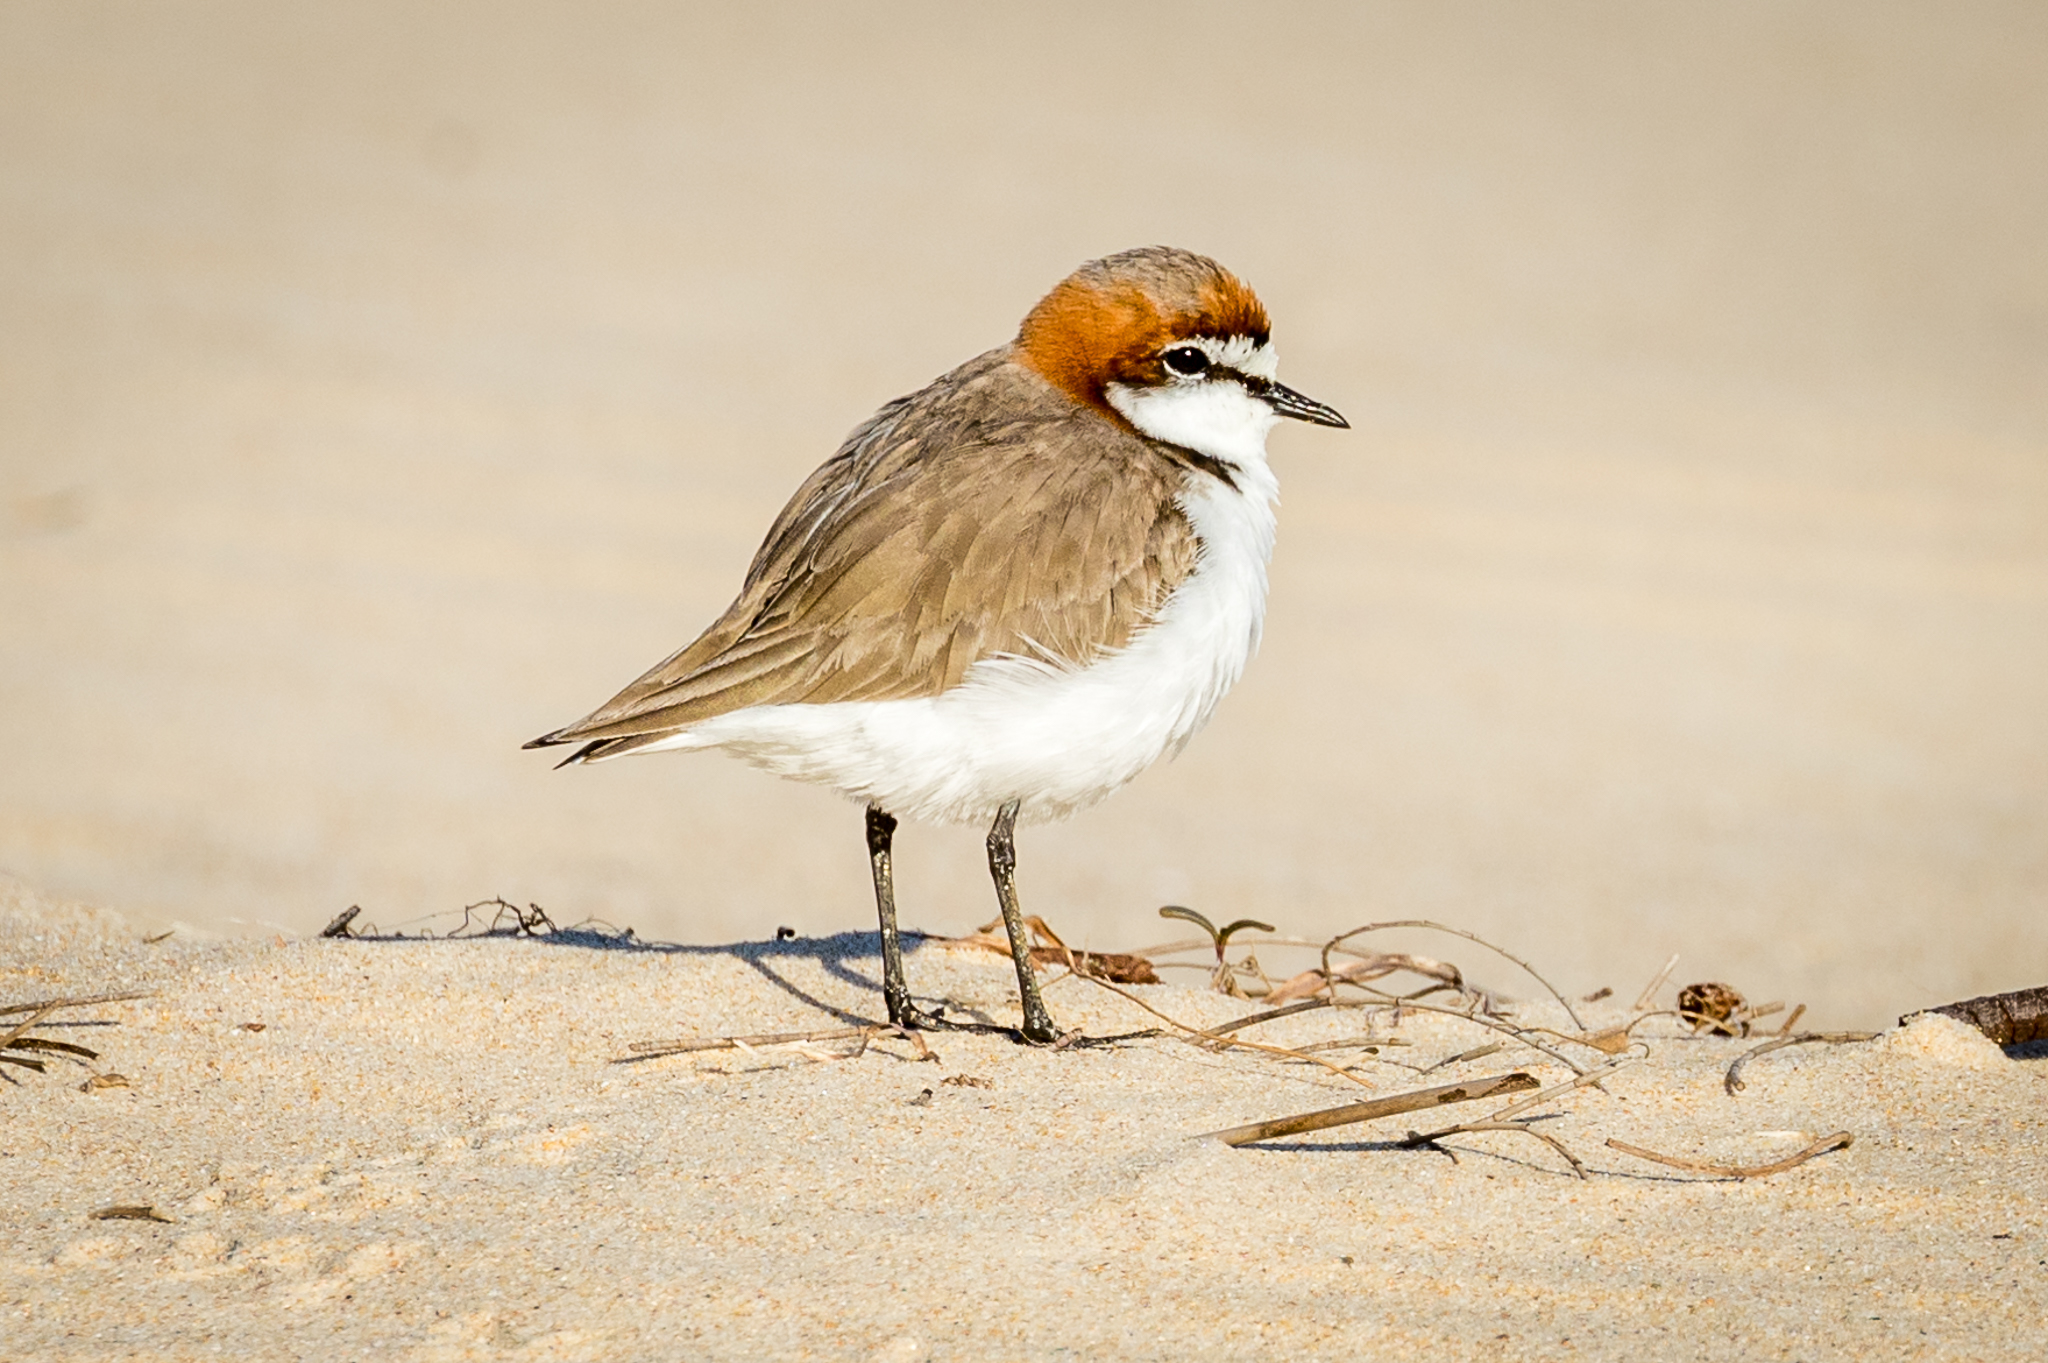 Between sea and dunes small birds like this Red-capped Plover dodge beach goers to feed at waters edge. Red-capped are the most common of the plovers and seen on most Australian sandy beaches.